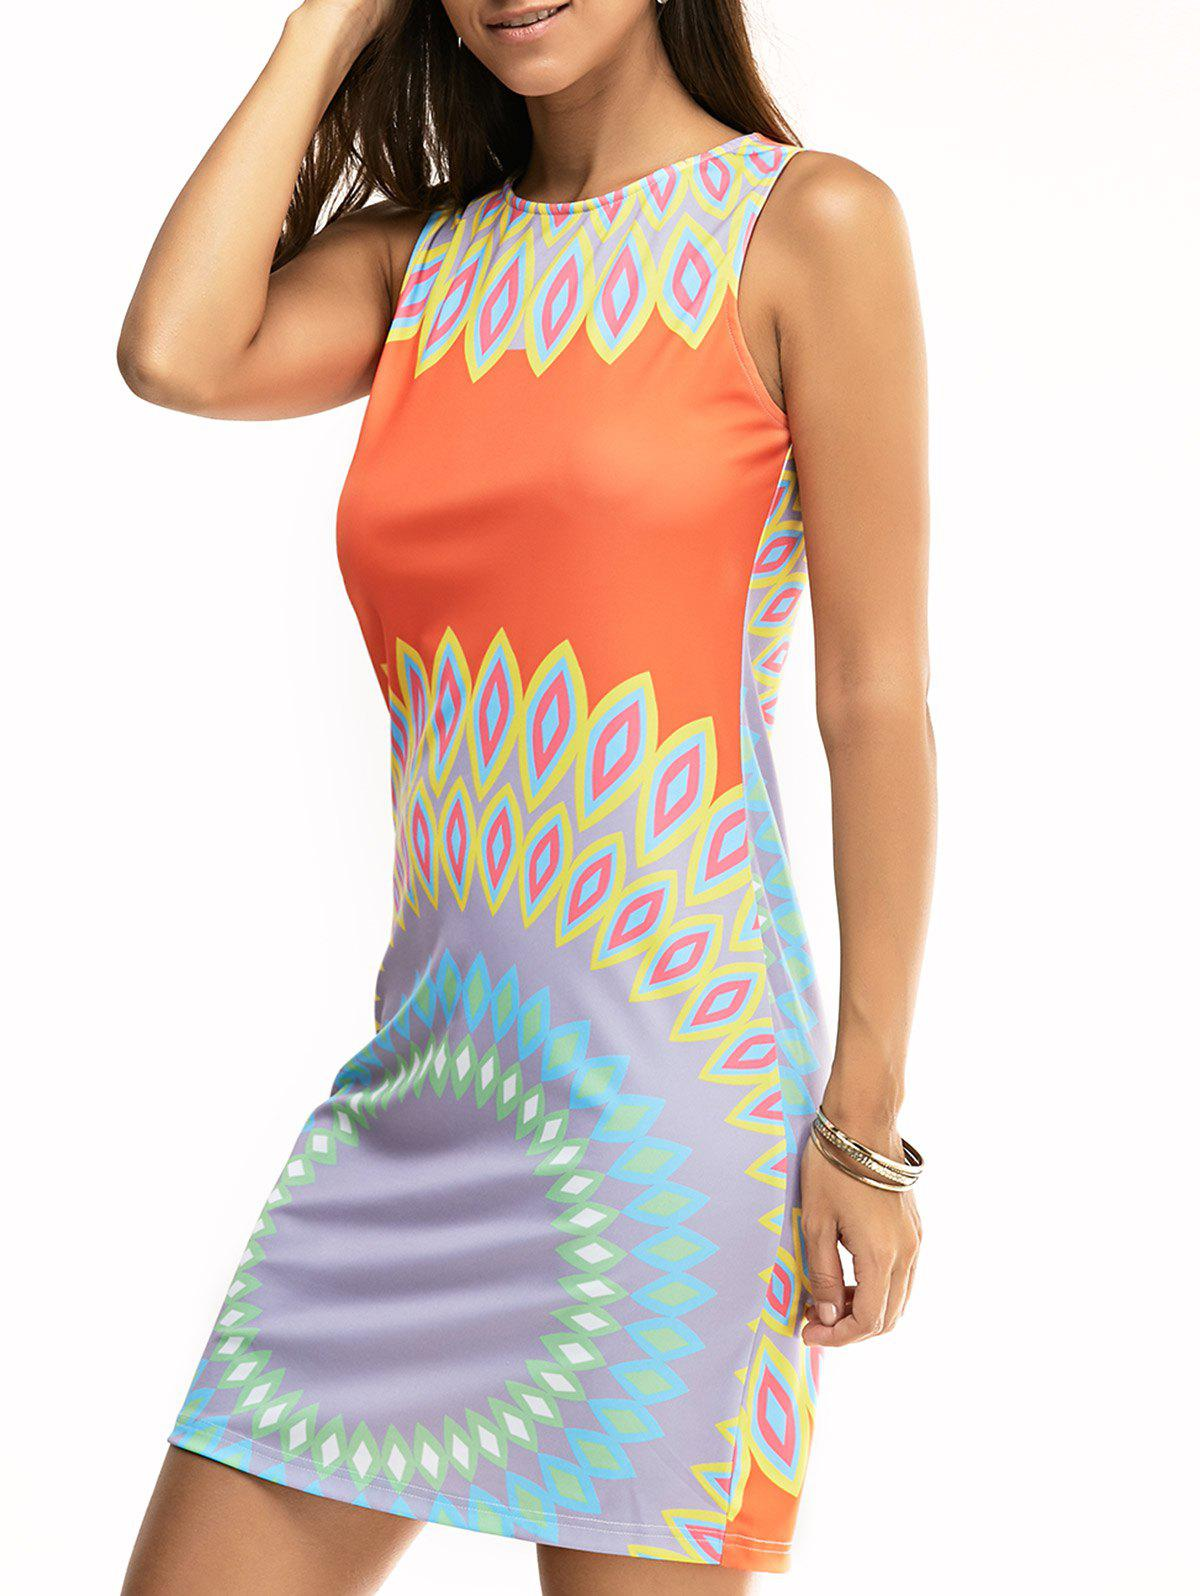 Ethnic Sleeveless Printed Slimming Dress - COLORMIX XL